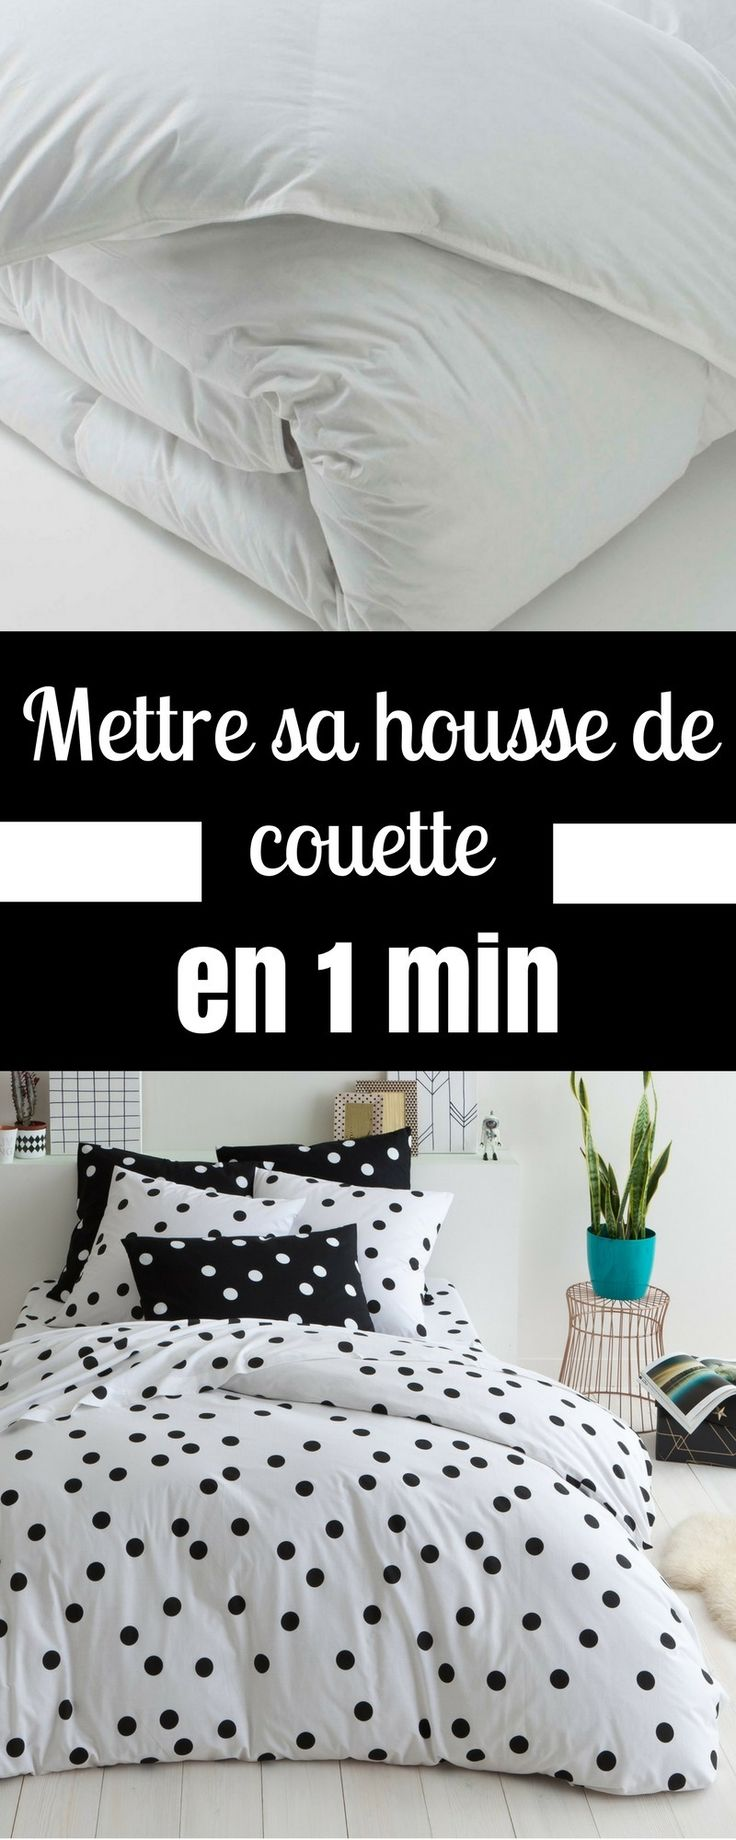 les 25 meilleures id es de la cat gorie housse de couette sur pinterest jeux de housse de. Black Bedroom Furniture Sets. Home Design Ideas